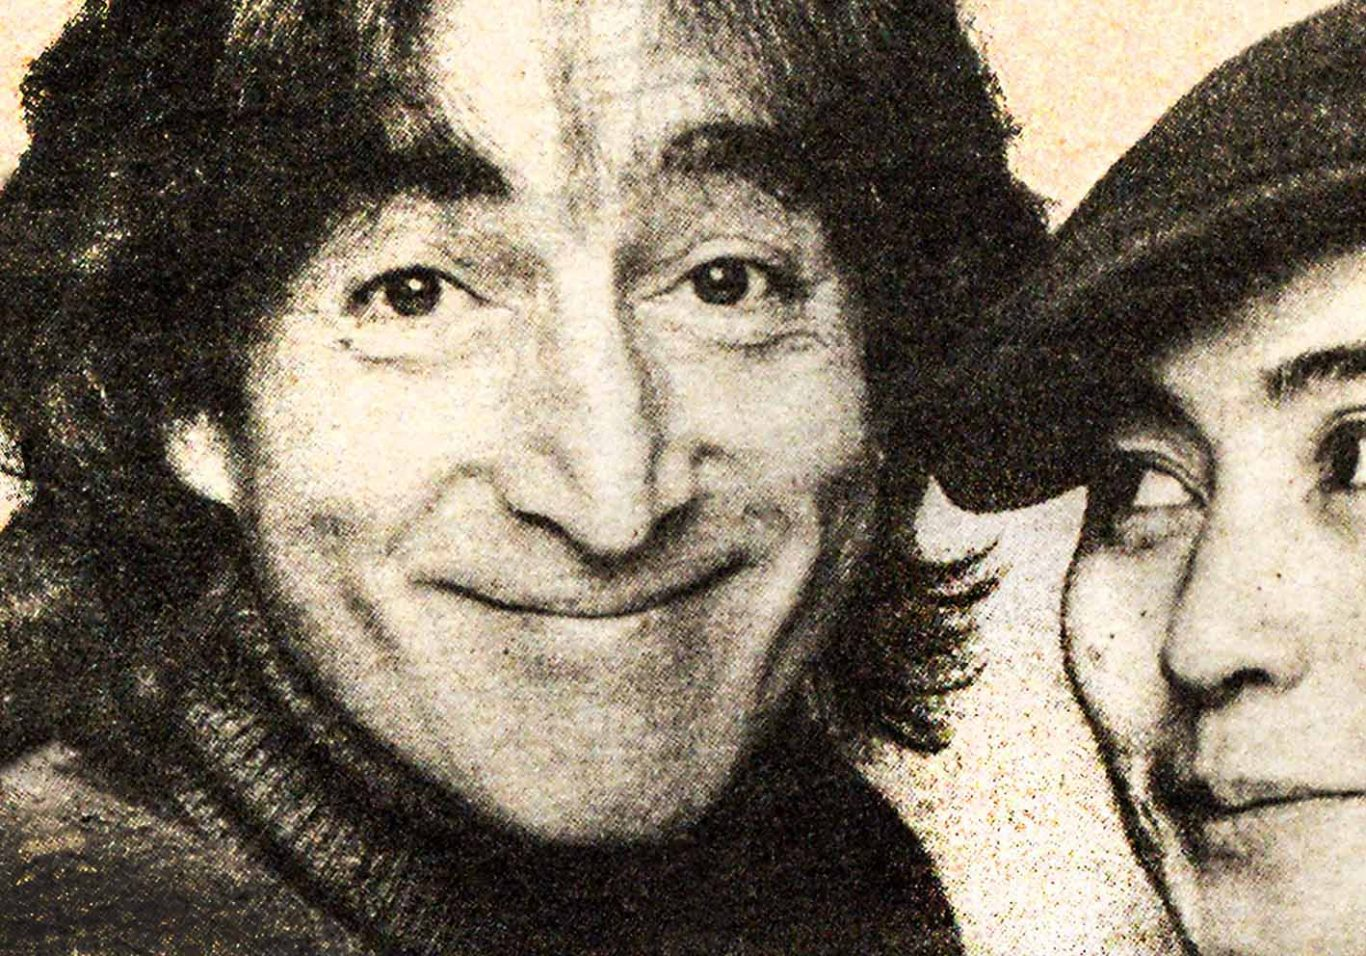 Robert Christgau's 1980 remembrance of John Lennon in the Village Voice